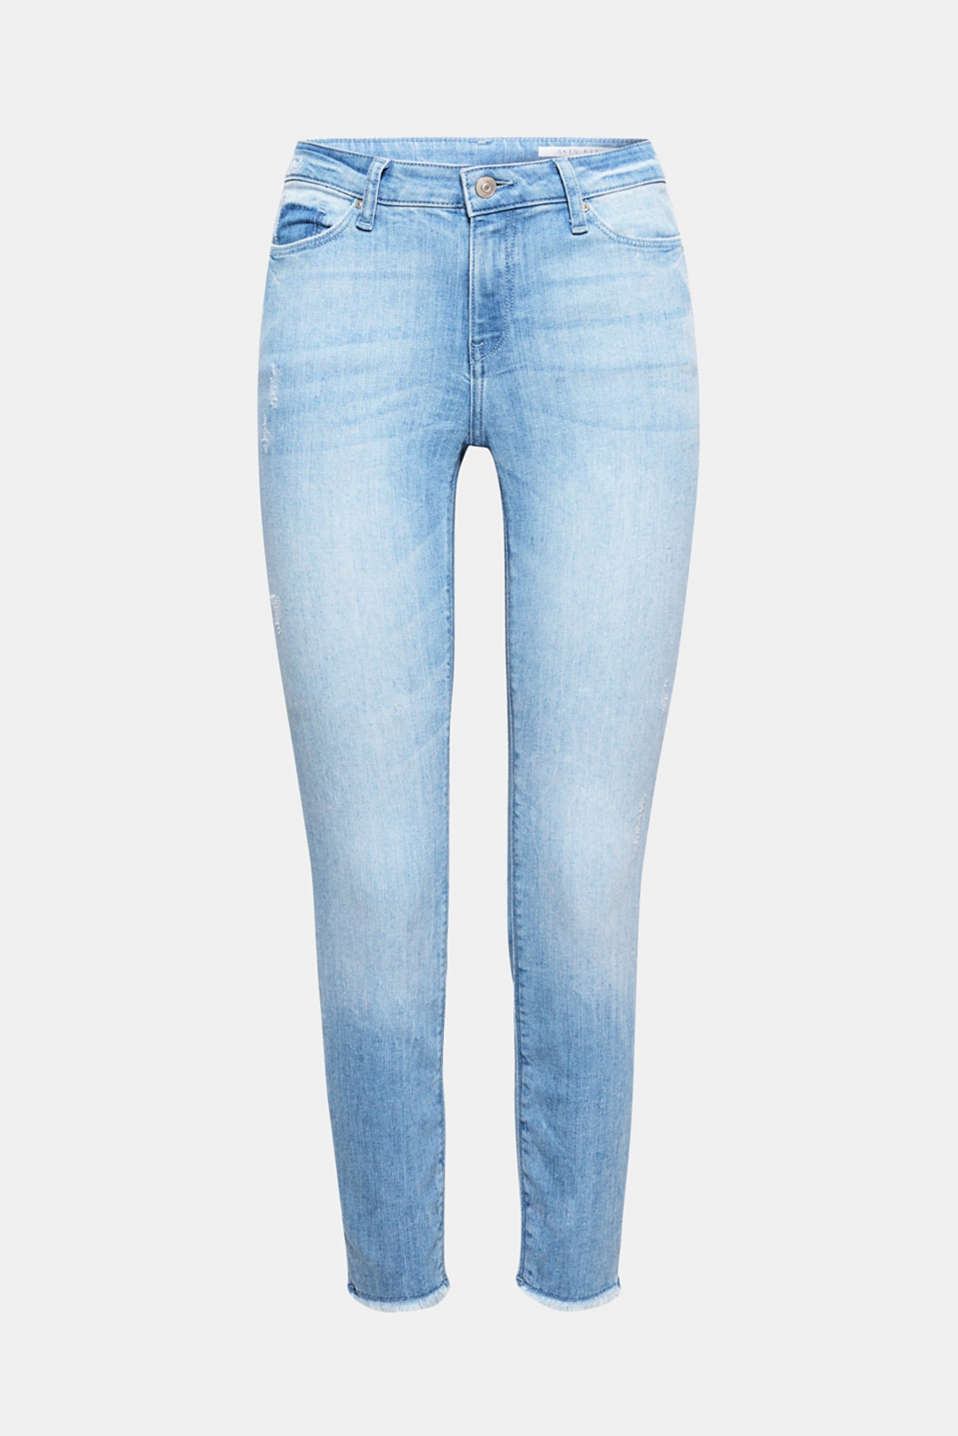 Show off your ankles! These jeans boast a cool look thanks to the stylish cropped legs with frayed ends and trendy washed details.